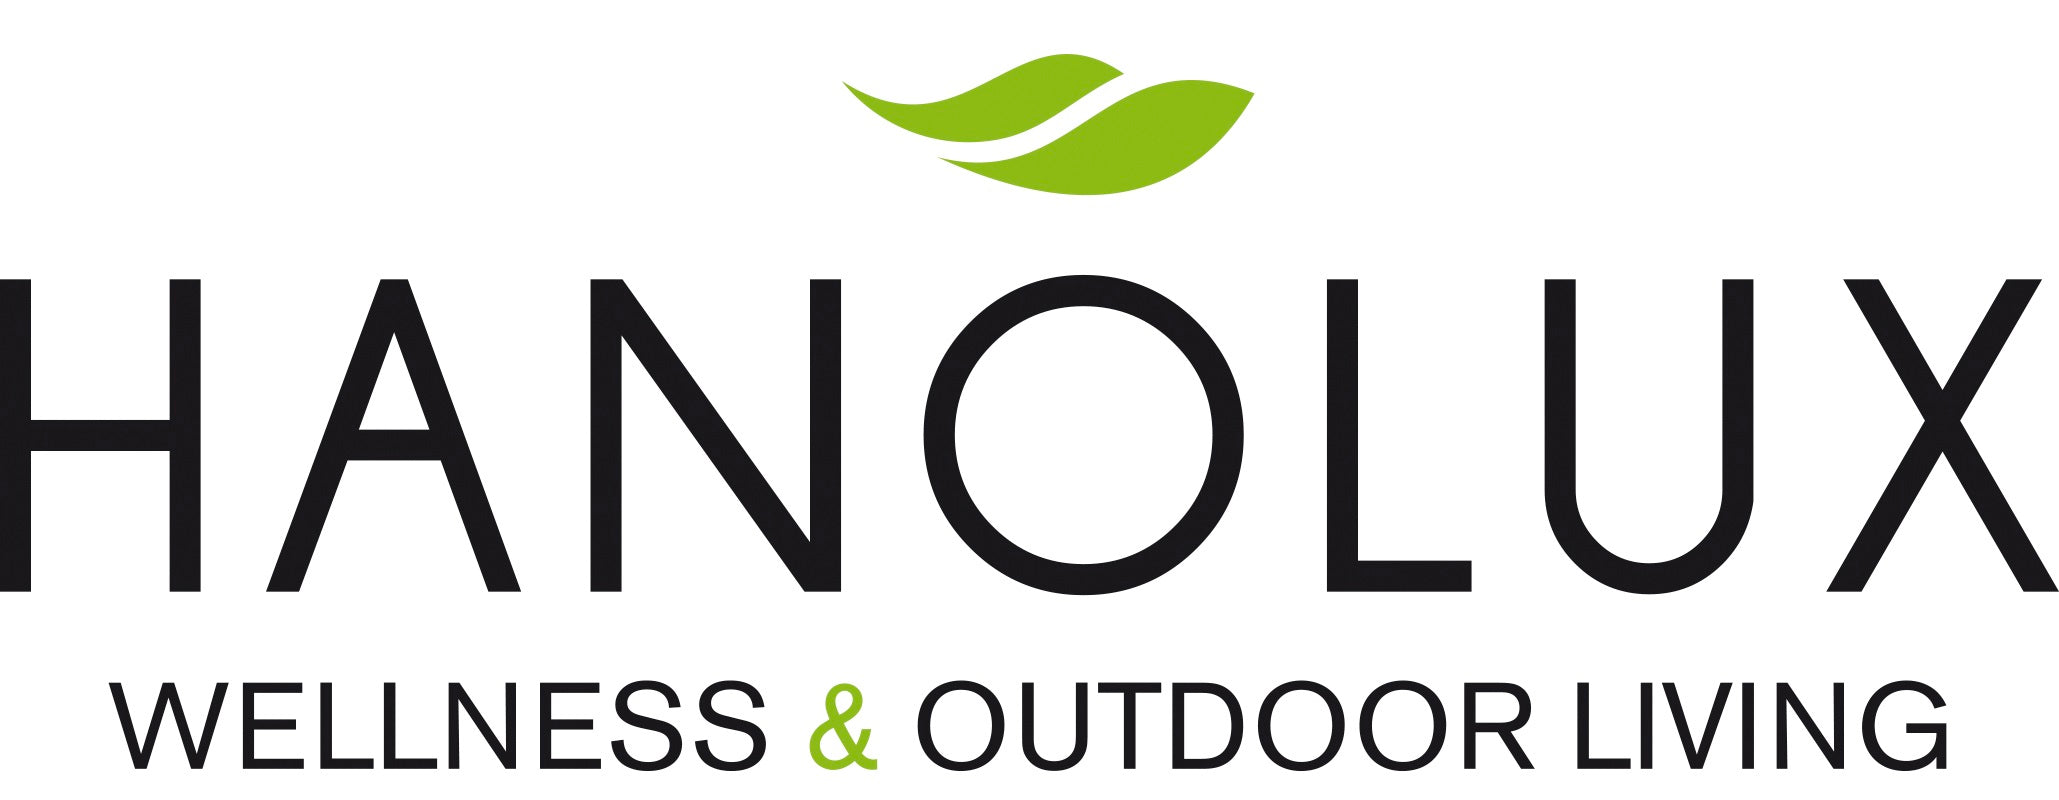 Hanolux wellness & outdoor living